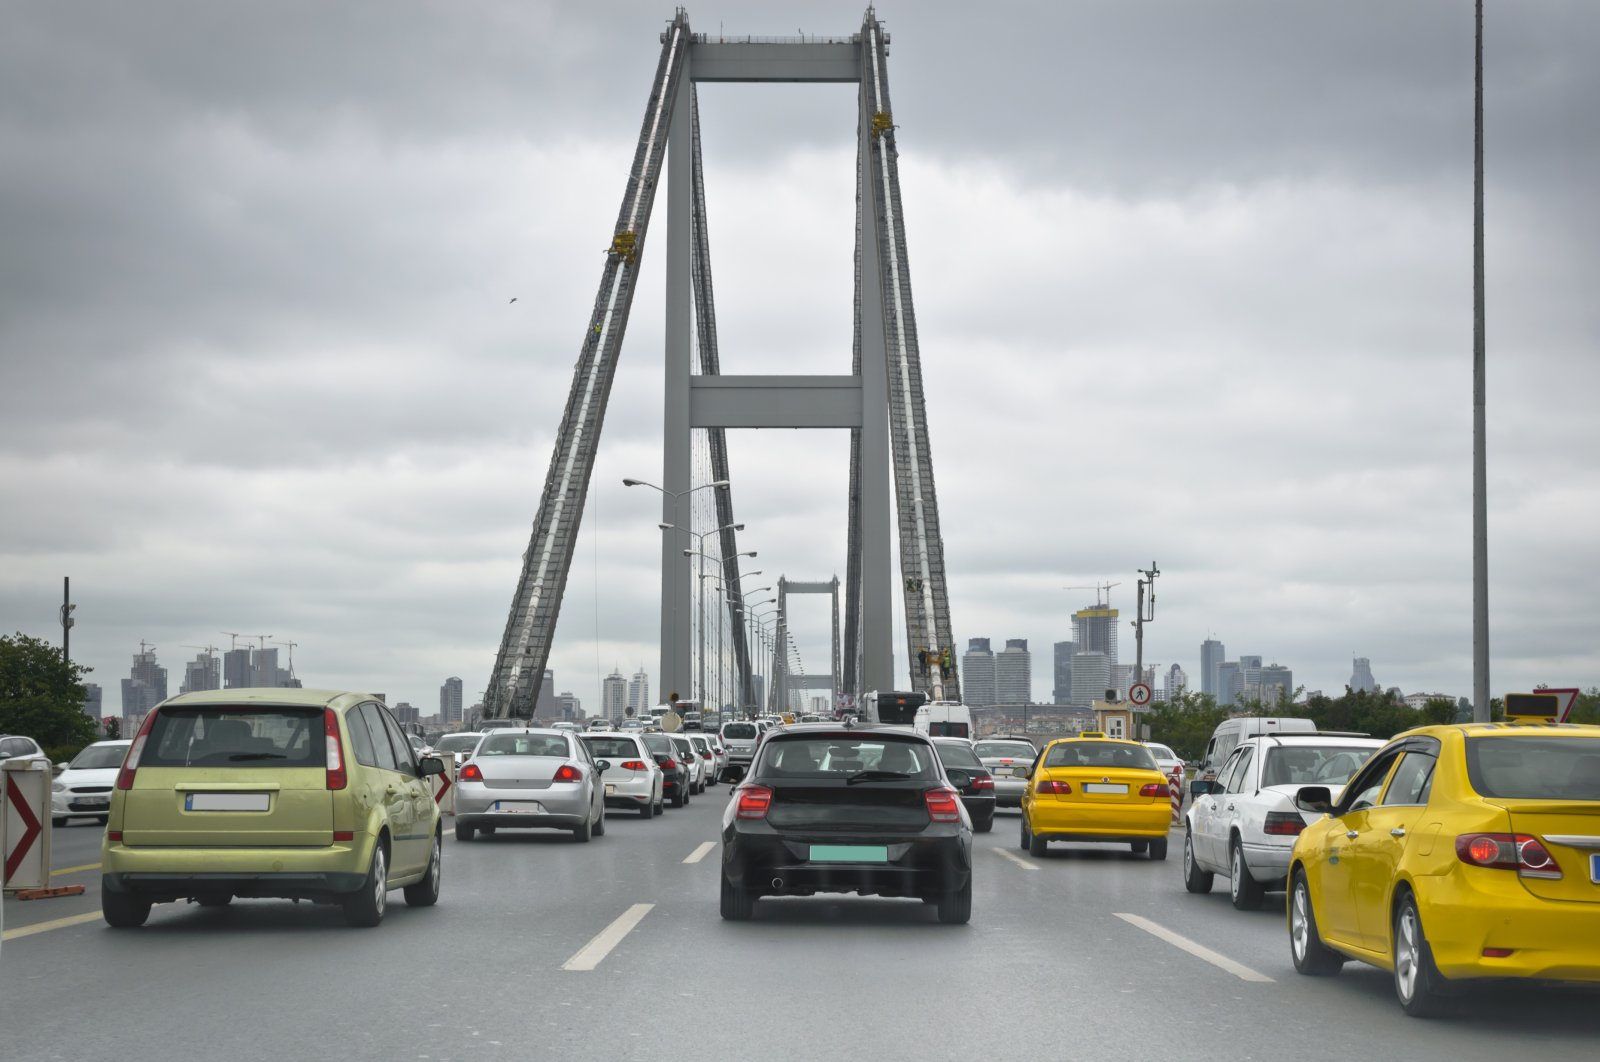 Having to retake your driving test as a foreigner can be daunting and time-consuming, but driving with an illegal license can incur heavy fines in Turkey.